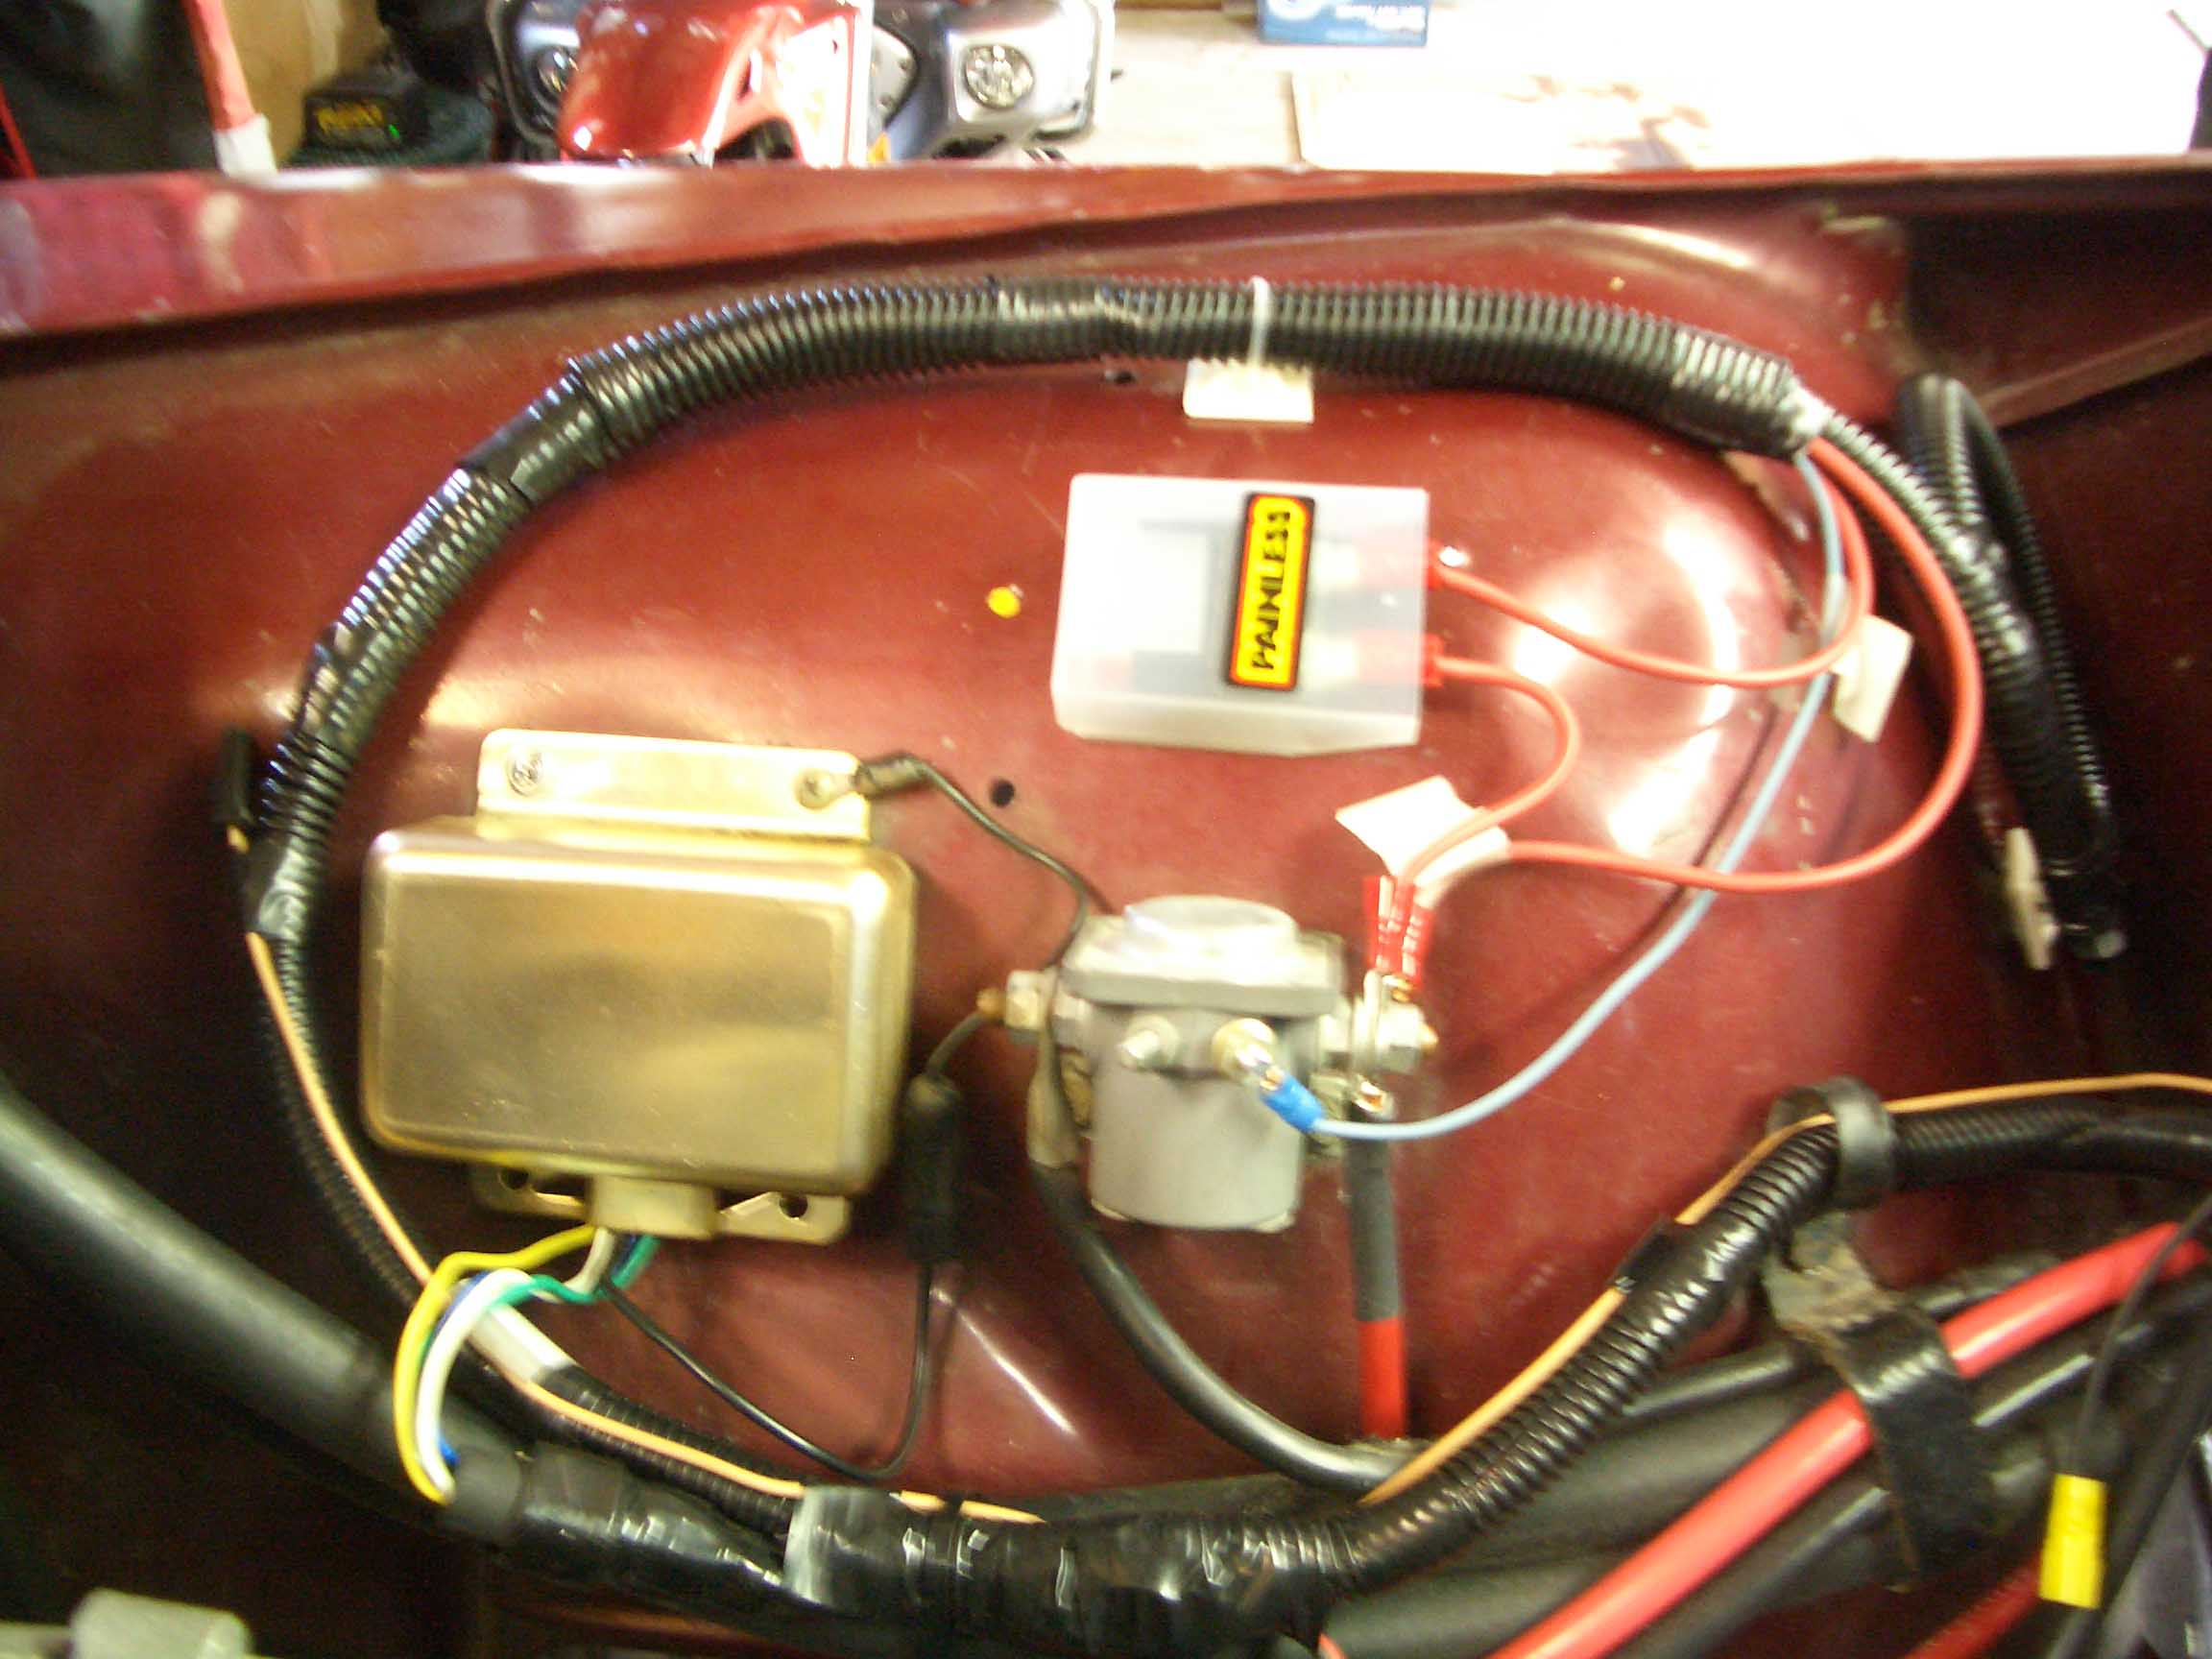 CIMG2298 certifiablejeep com hints full wiring harness replacement wiring harness replacement at fashall.co